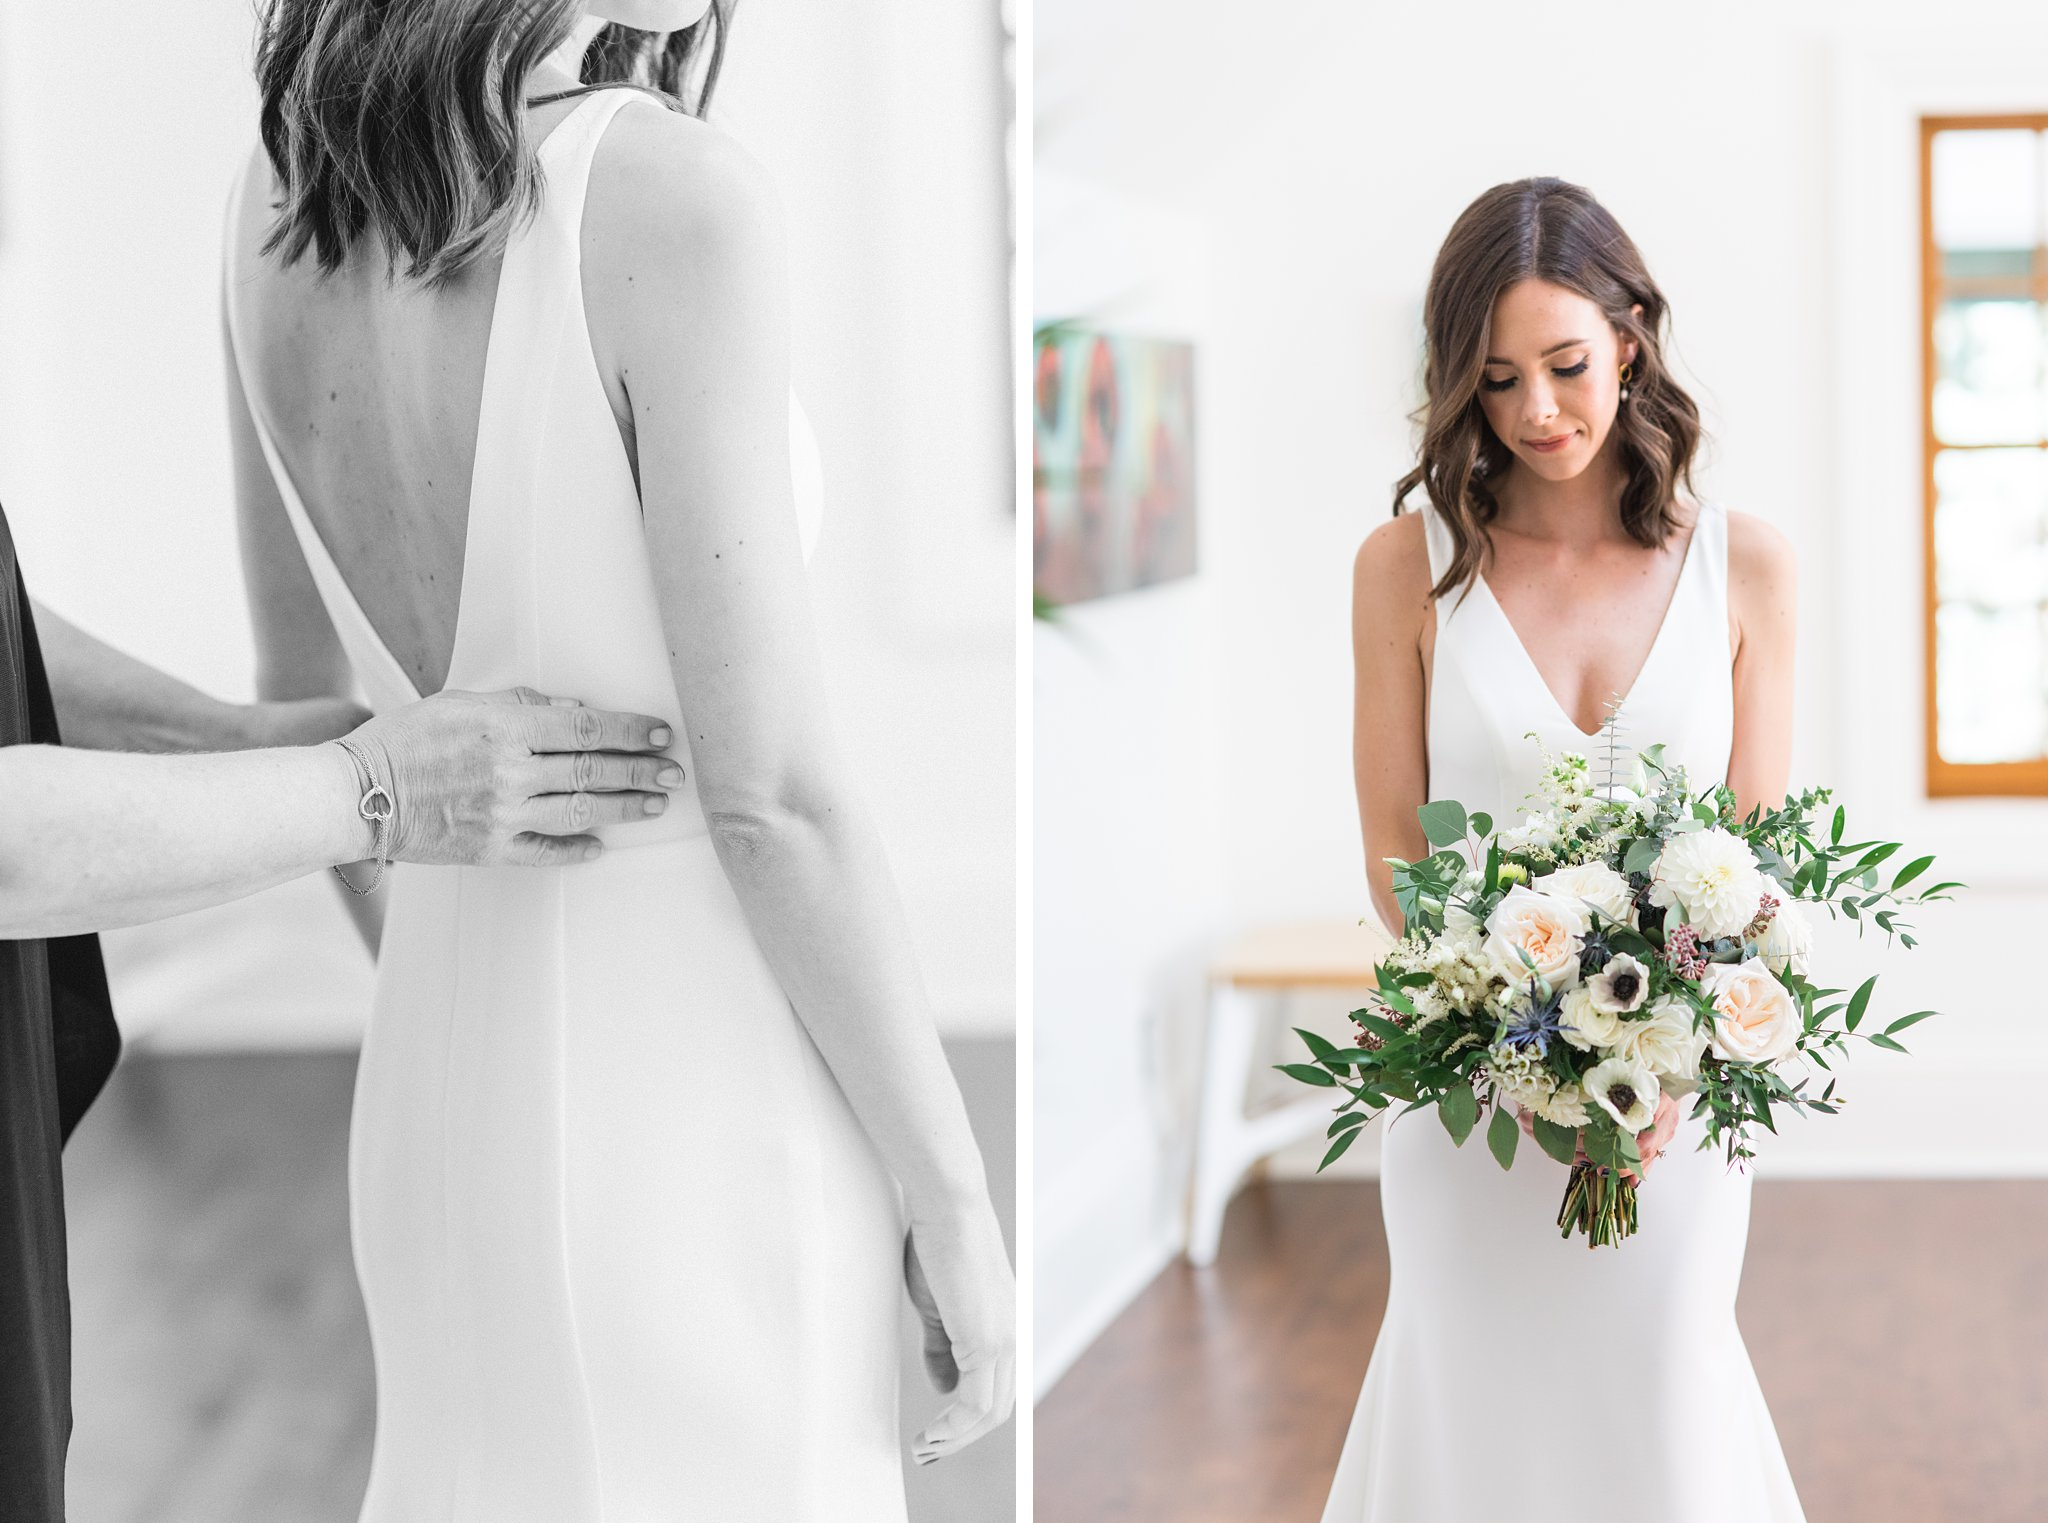 Simple dress design back, Opinicon Wedding Photos by Amy Pinder Photography